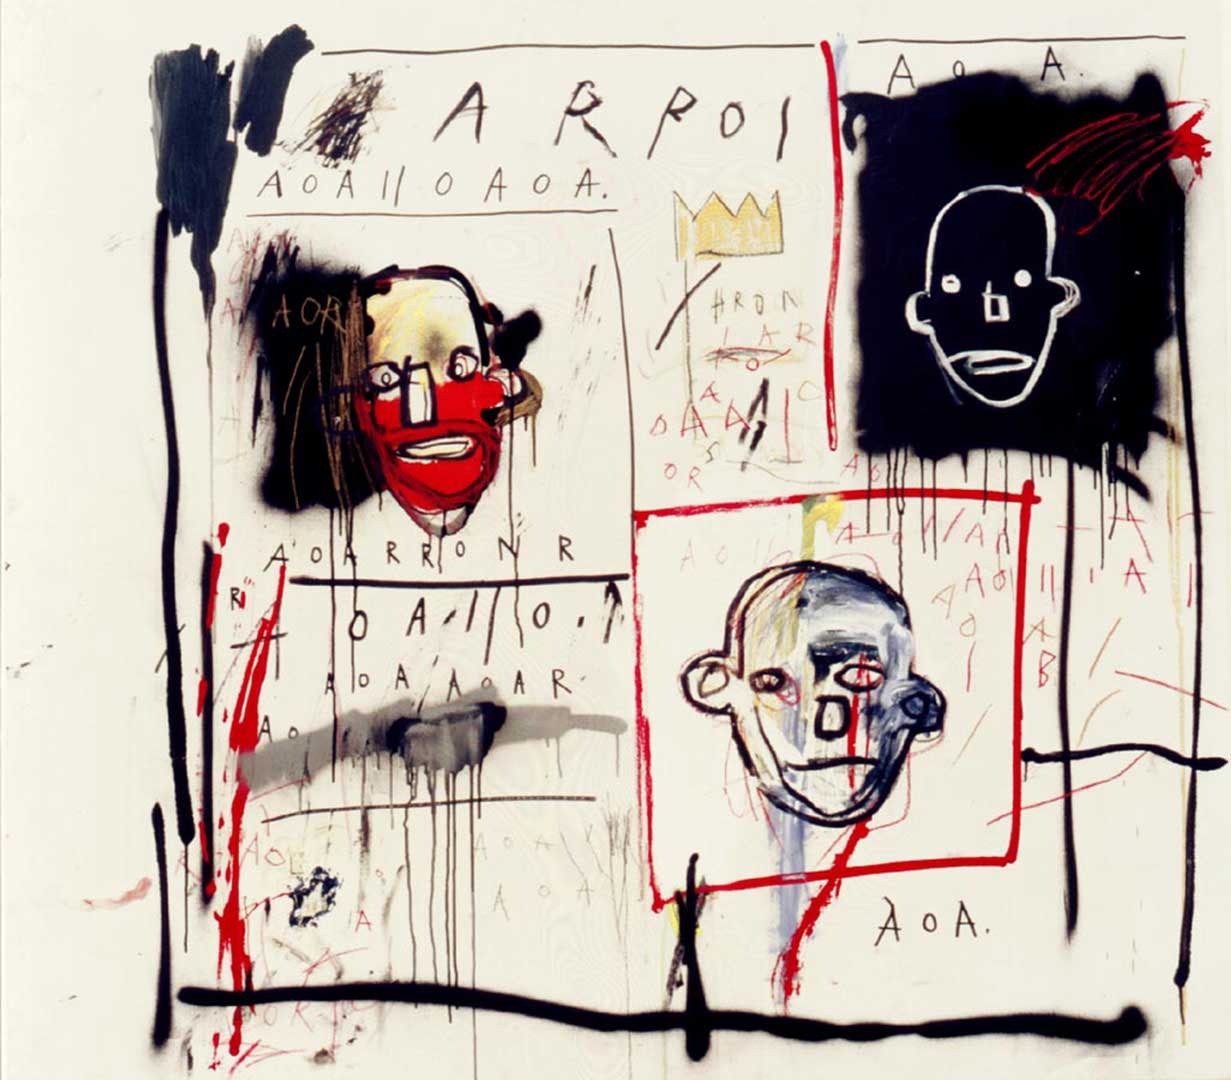 Untitled, 1981 Oil, oil stick and spray paint on canvas, 130x142,8 cm Private collection © The Estate of Jean-Michel Basquiat by SIAE 2016